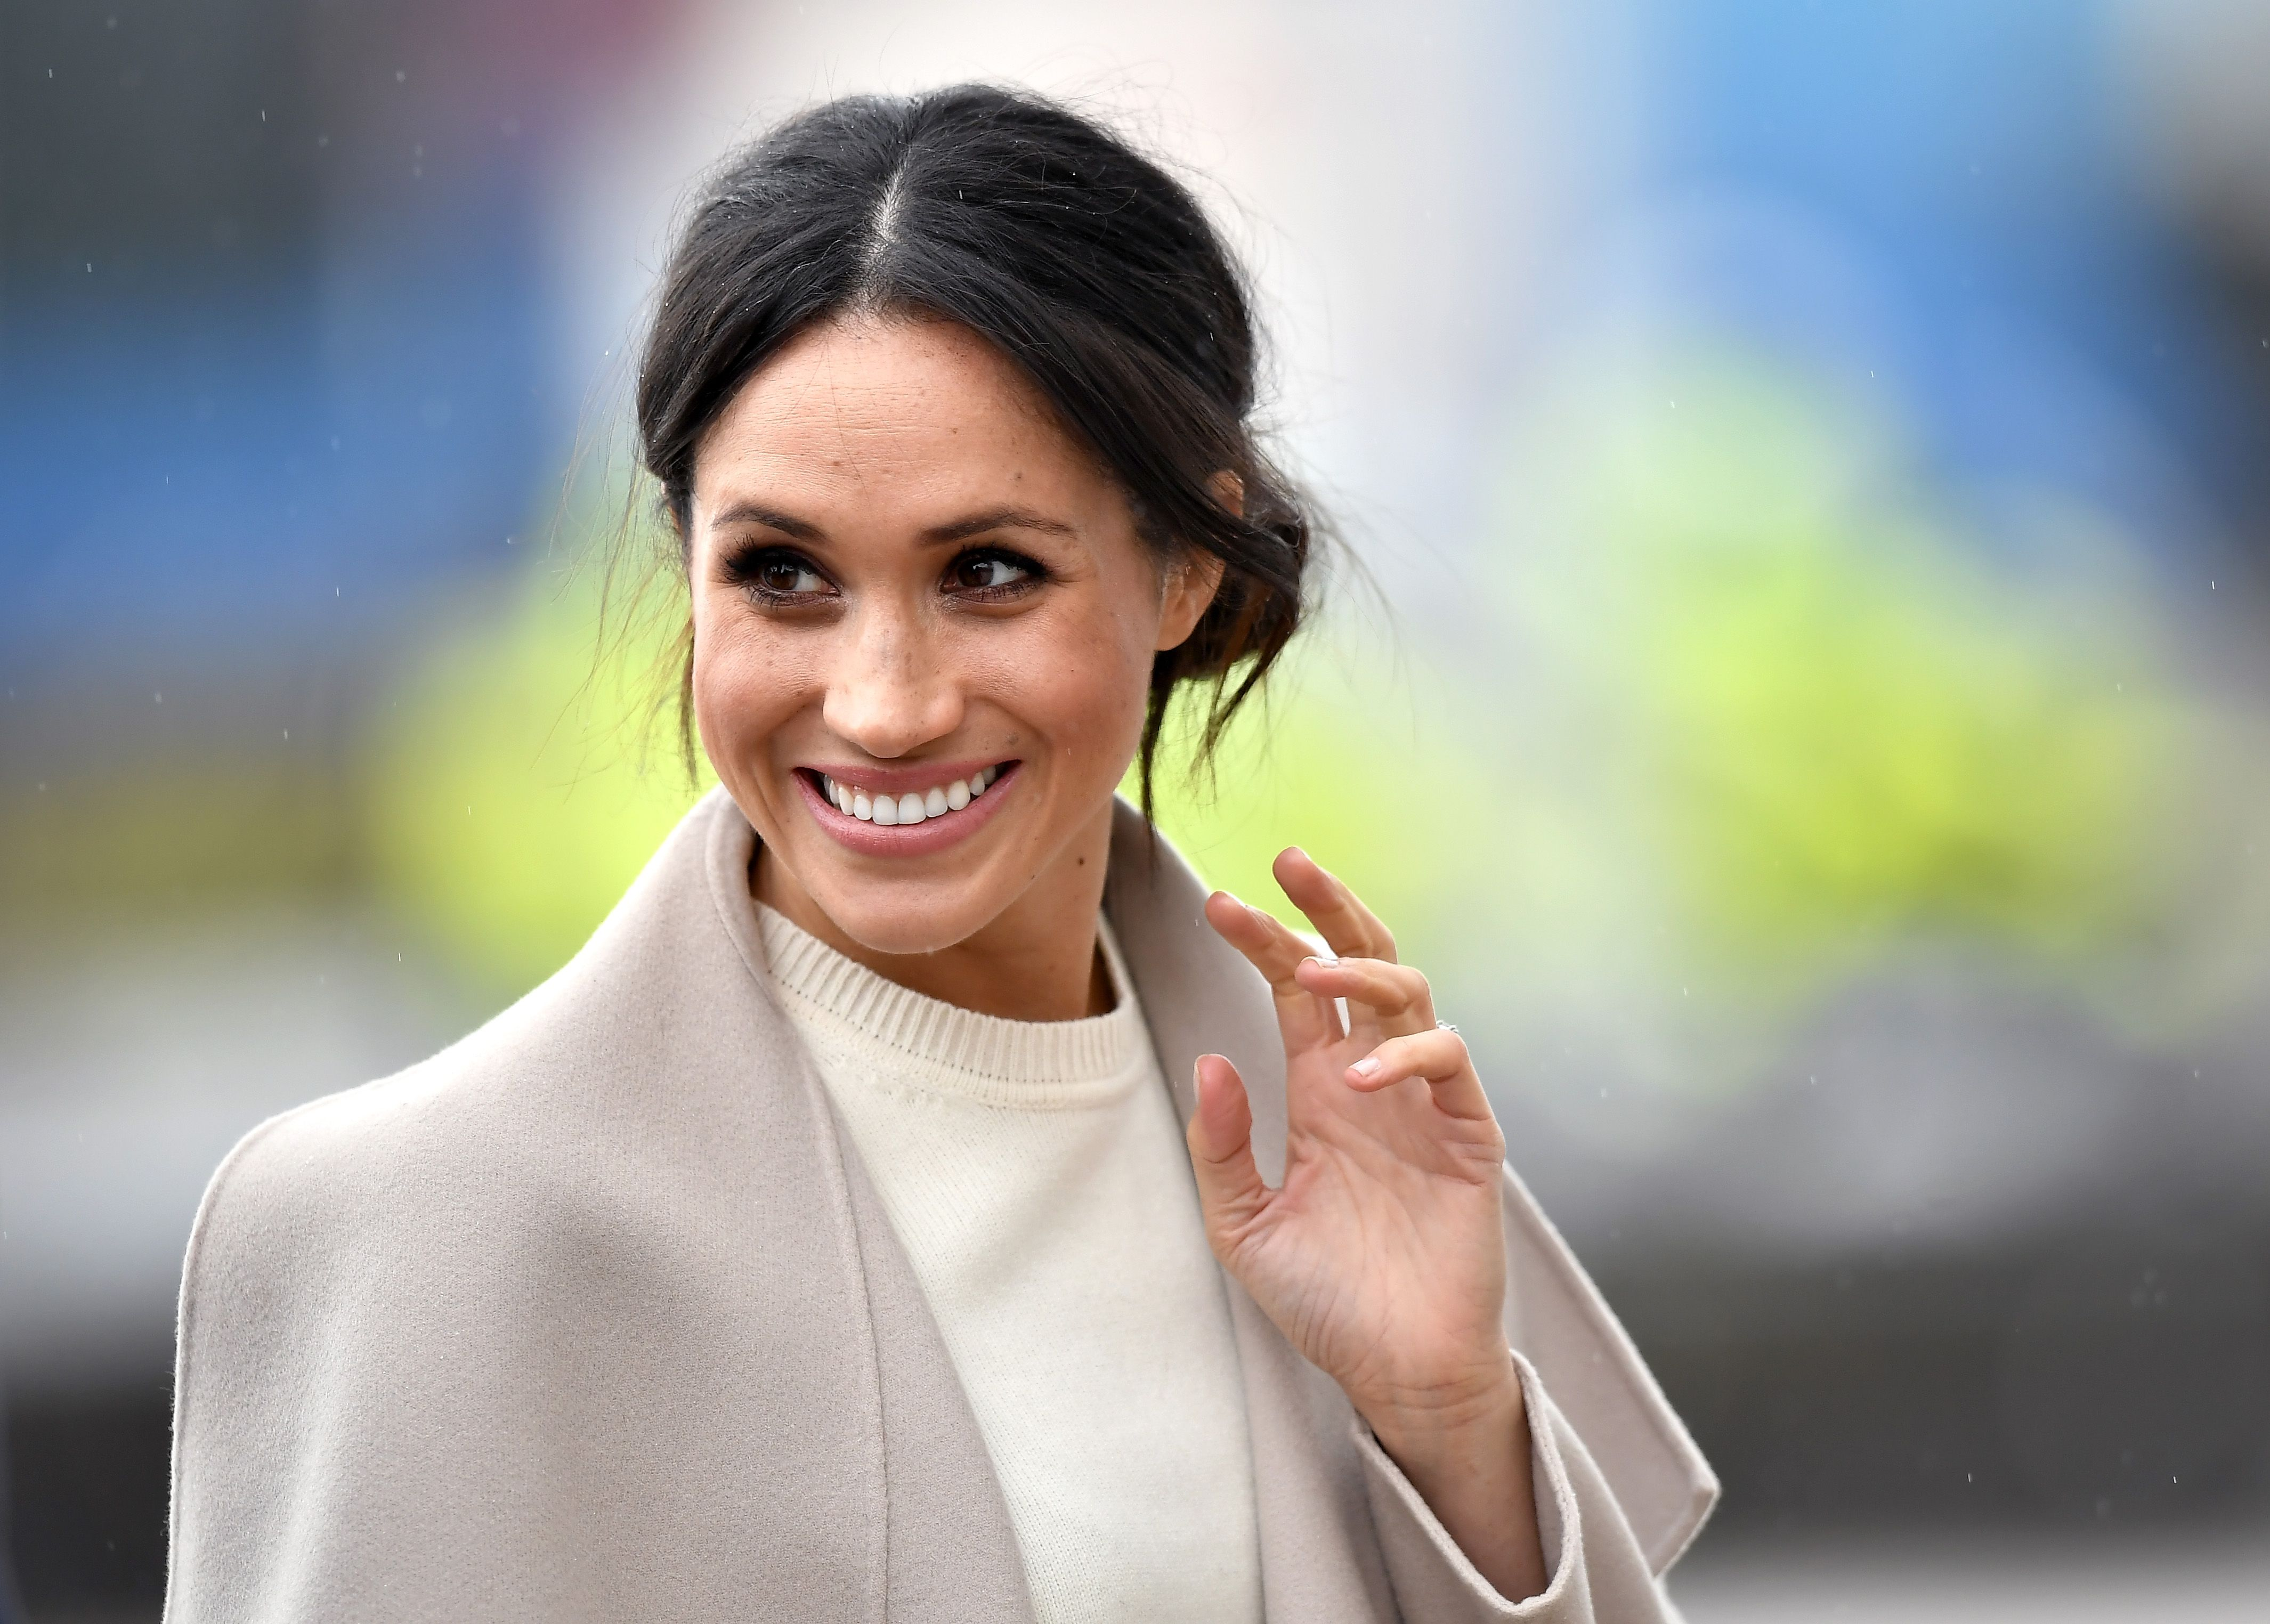 Watch Meghan Markle Surprise-Call the A-Listers On Her 'Vogue' Cover